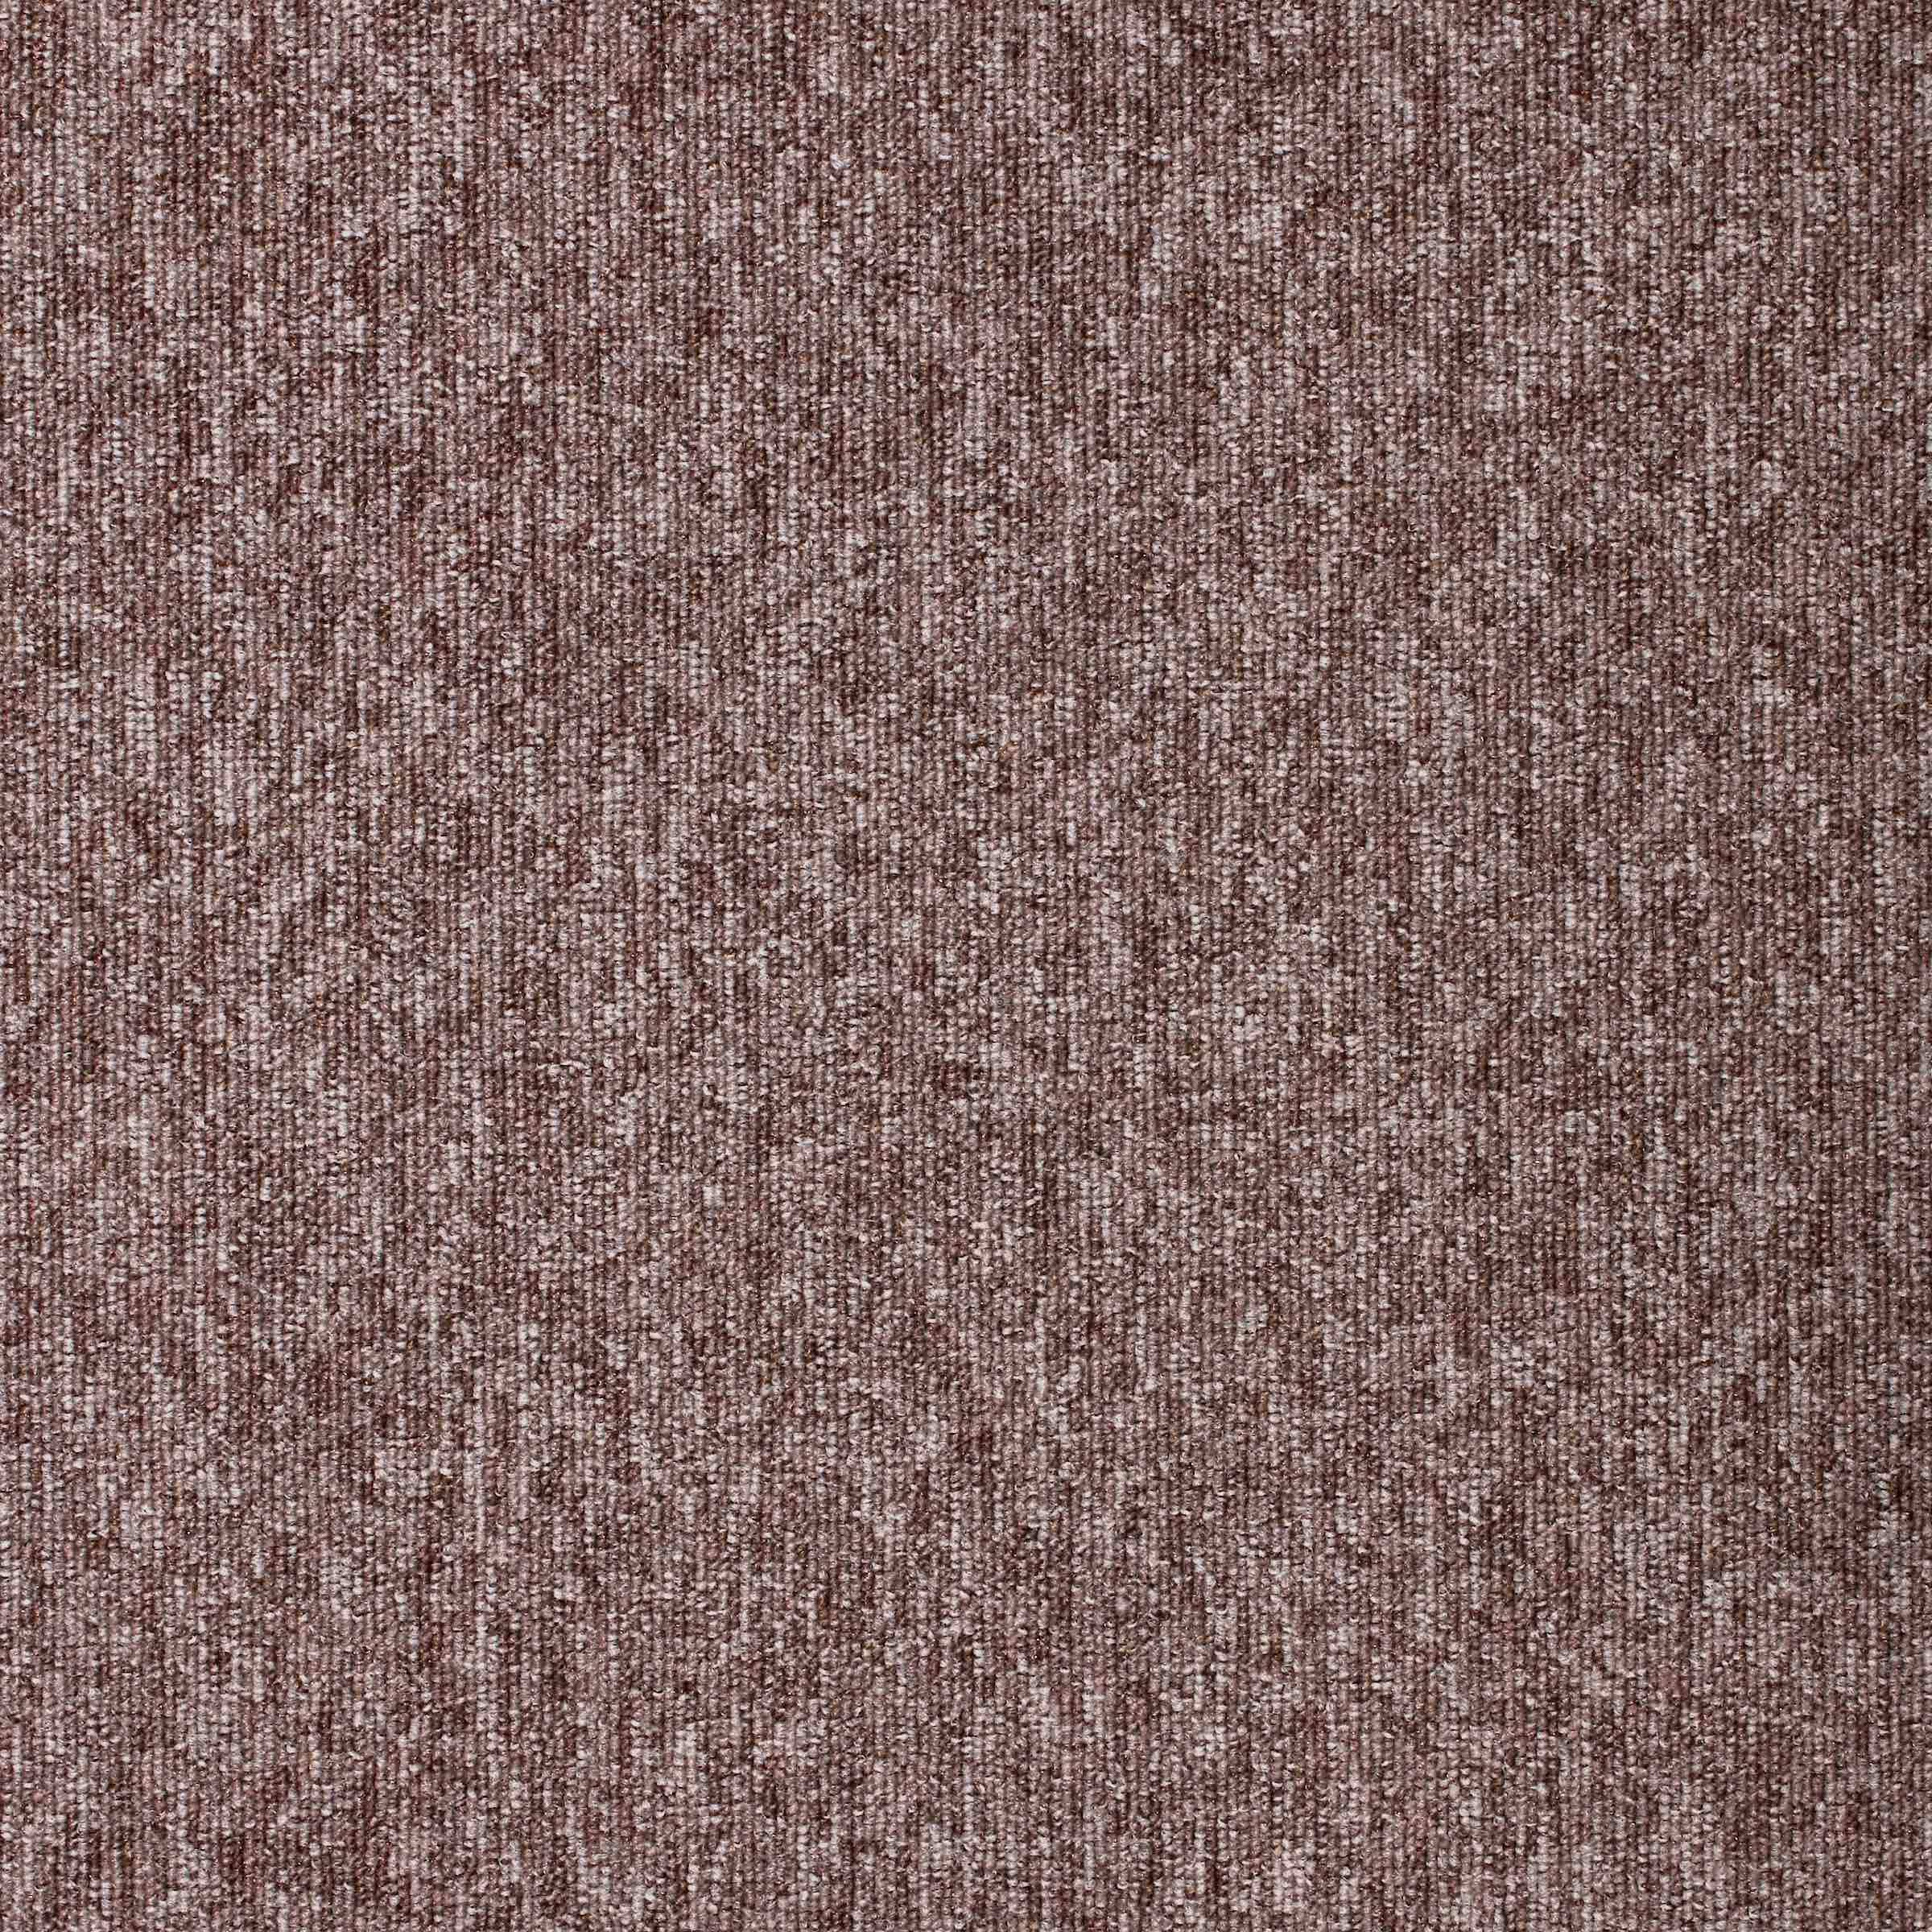 Diversity | Bark, 108 | Paragon Carpet Tiles | Commercial Carpet Tiles